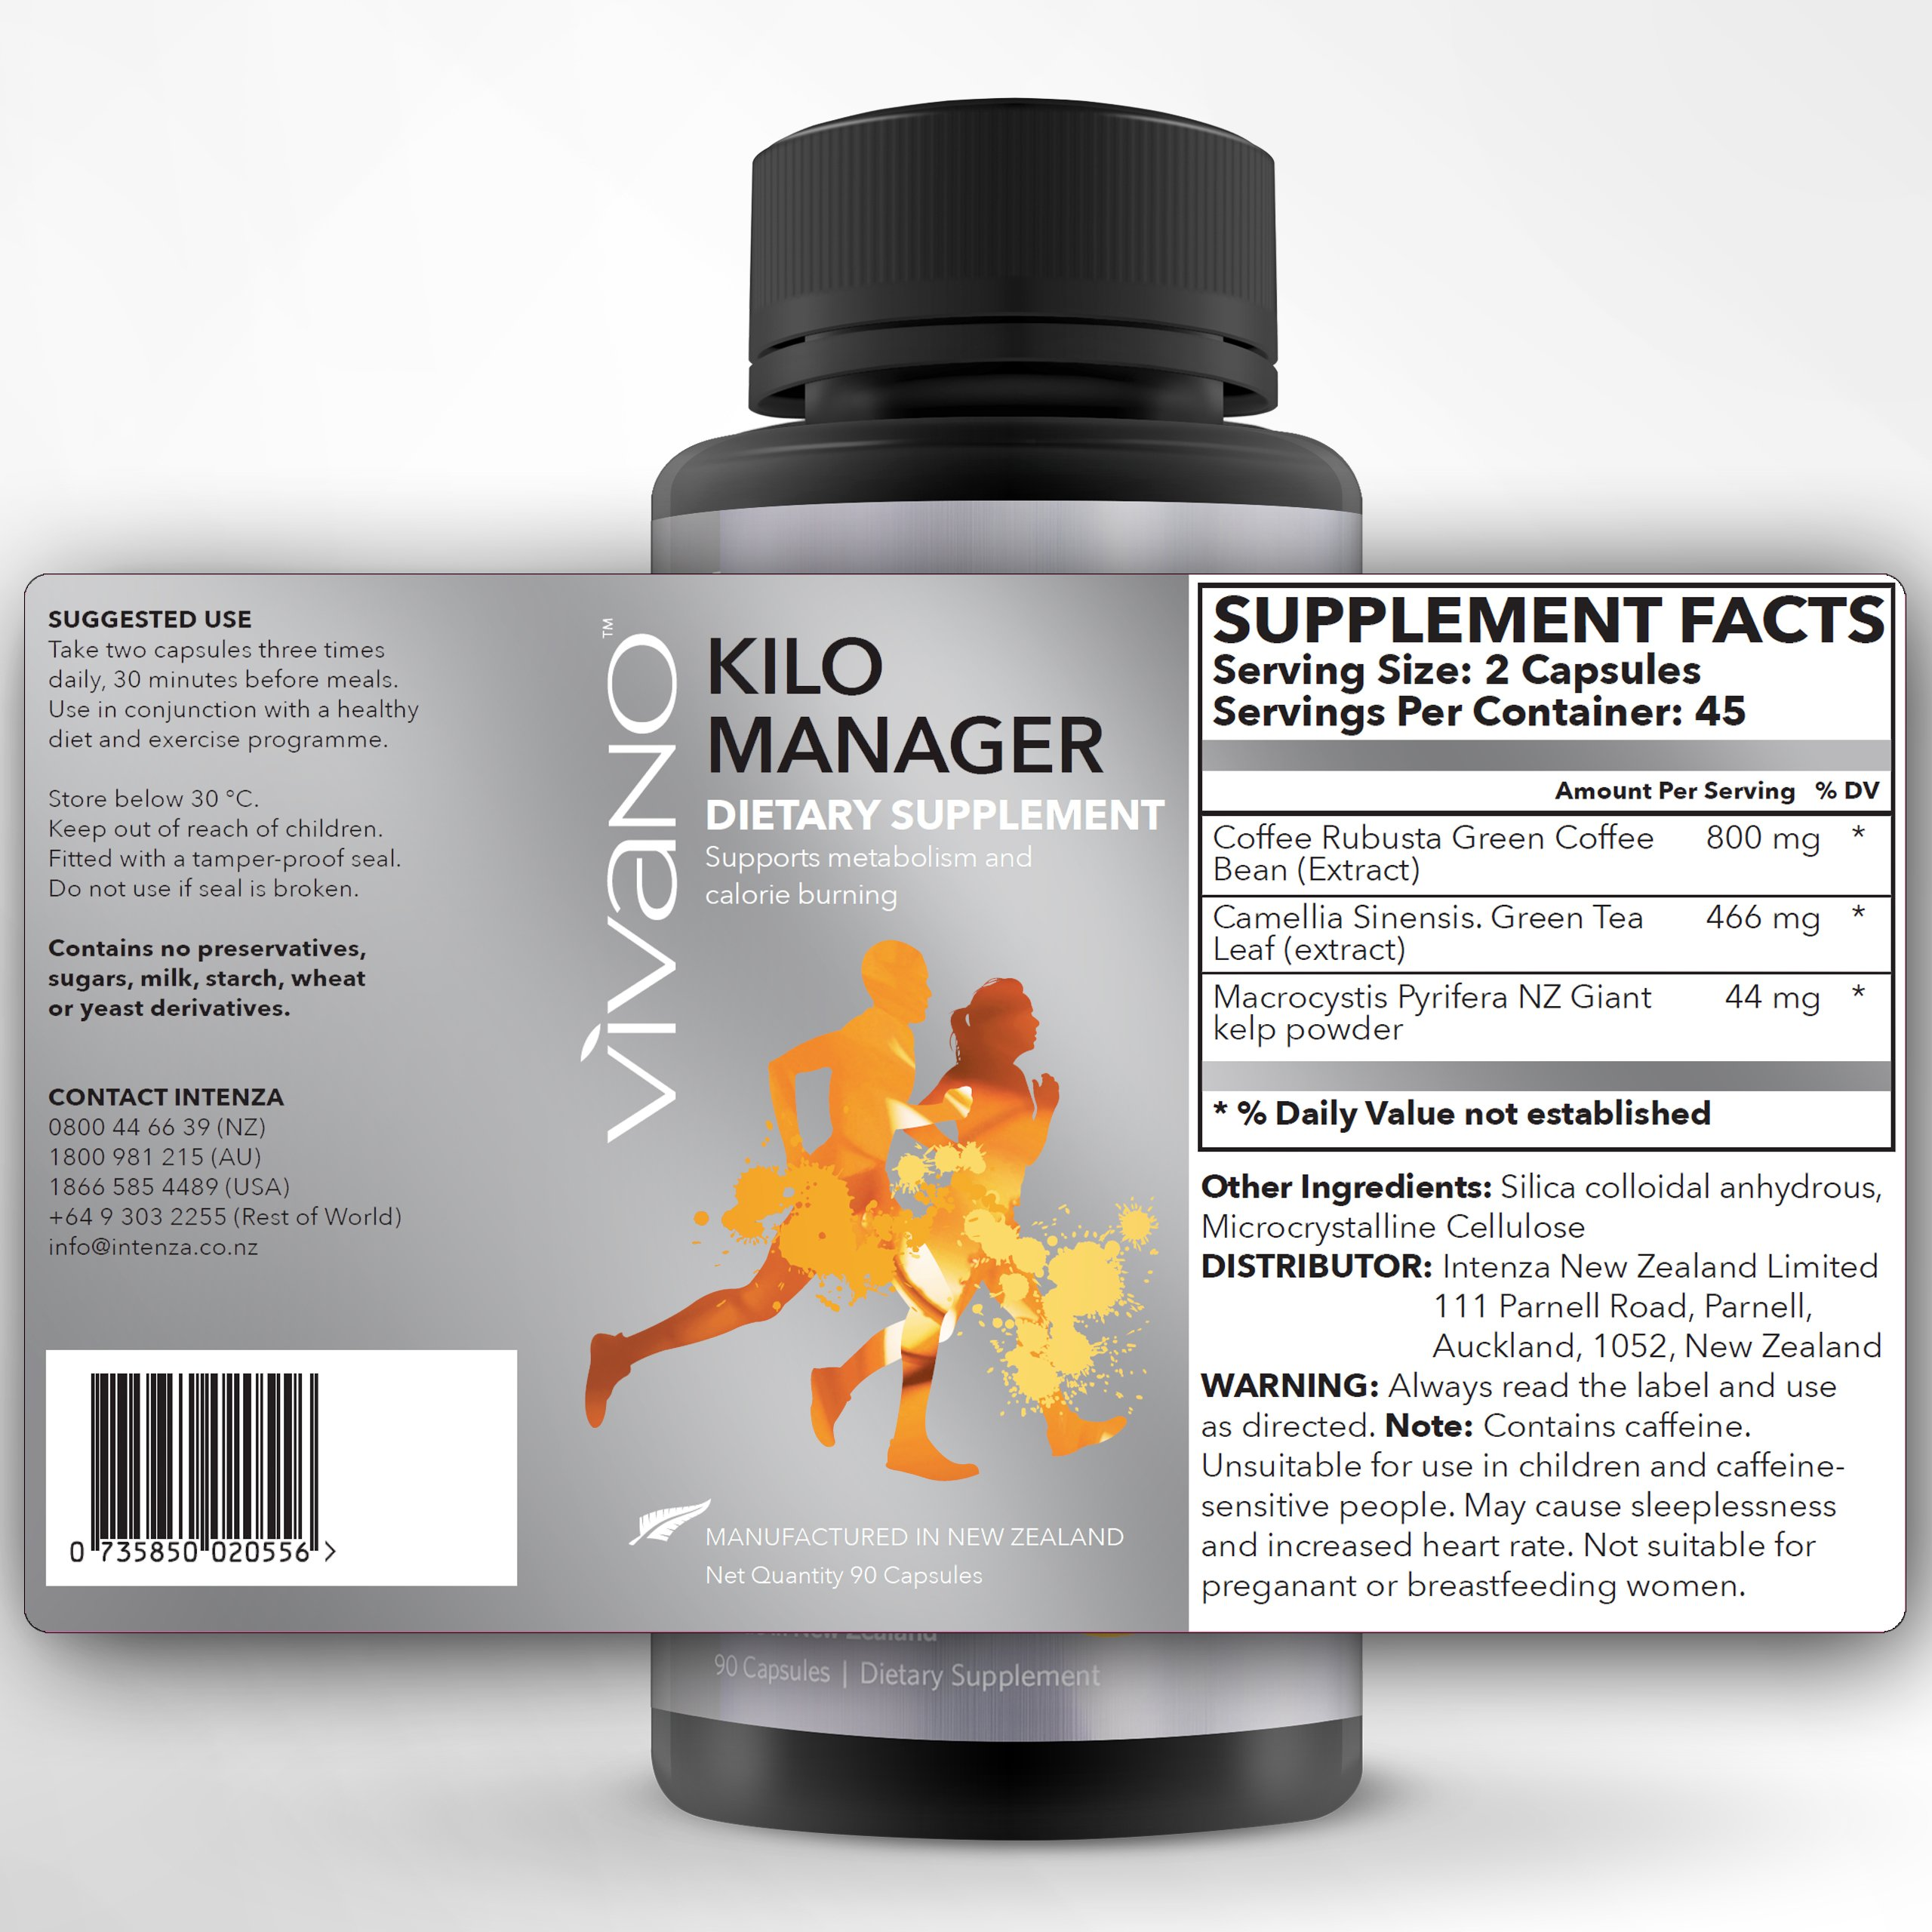 Premium Weight Loss Supplement - 100% Pure, Vivano Kilo Manager – Natural Fat & Calorie Burner and Metabolism Booster. with New Zealand kelp, Green Tea and Green Coffee Beans.